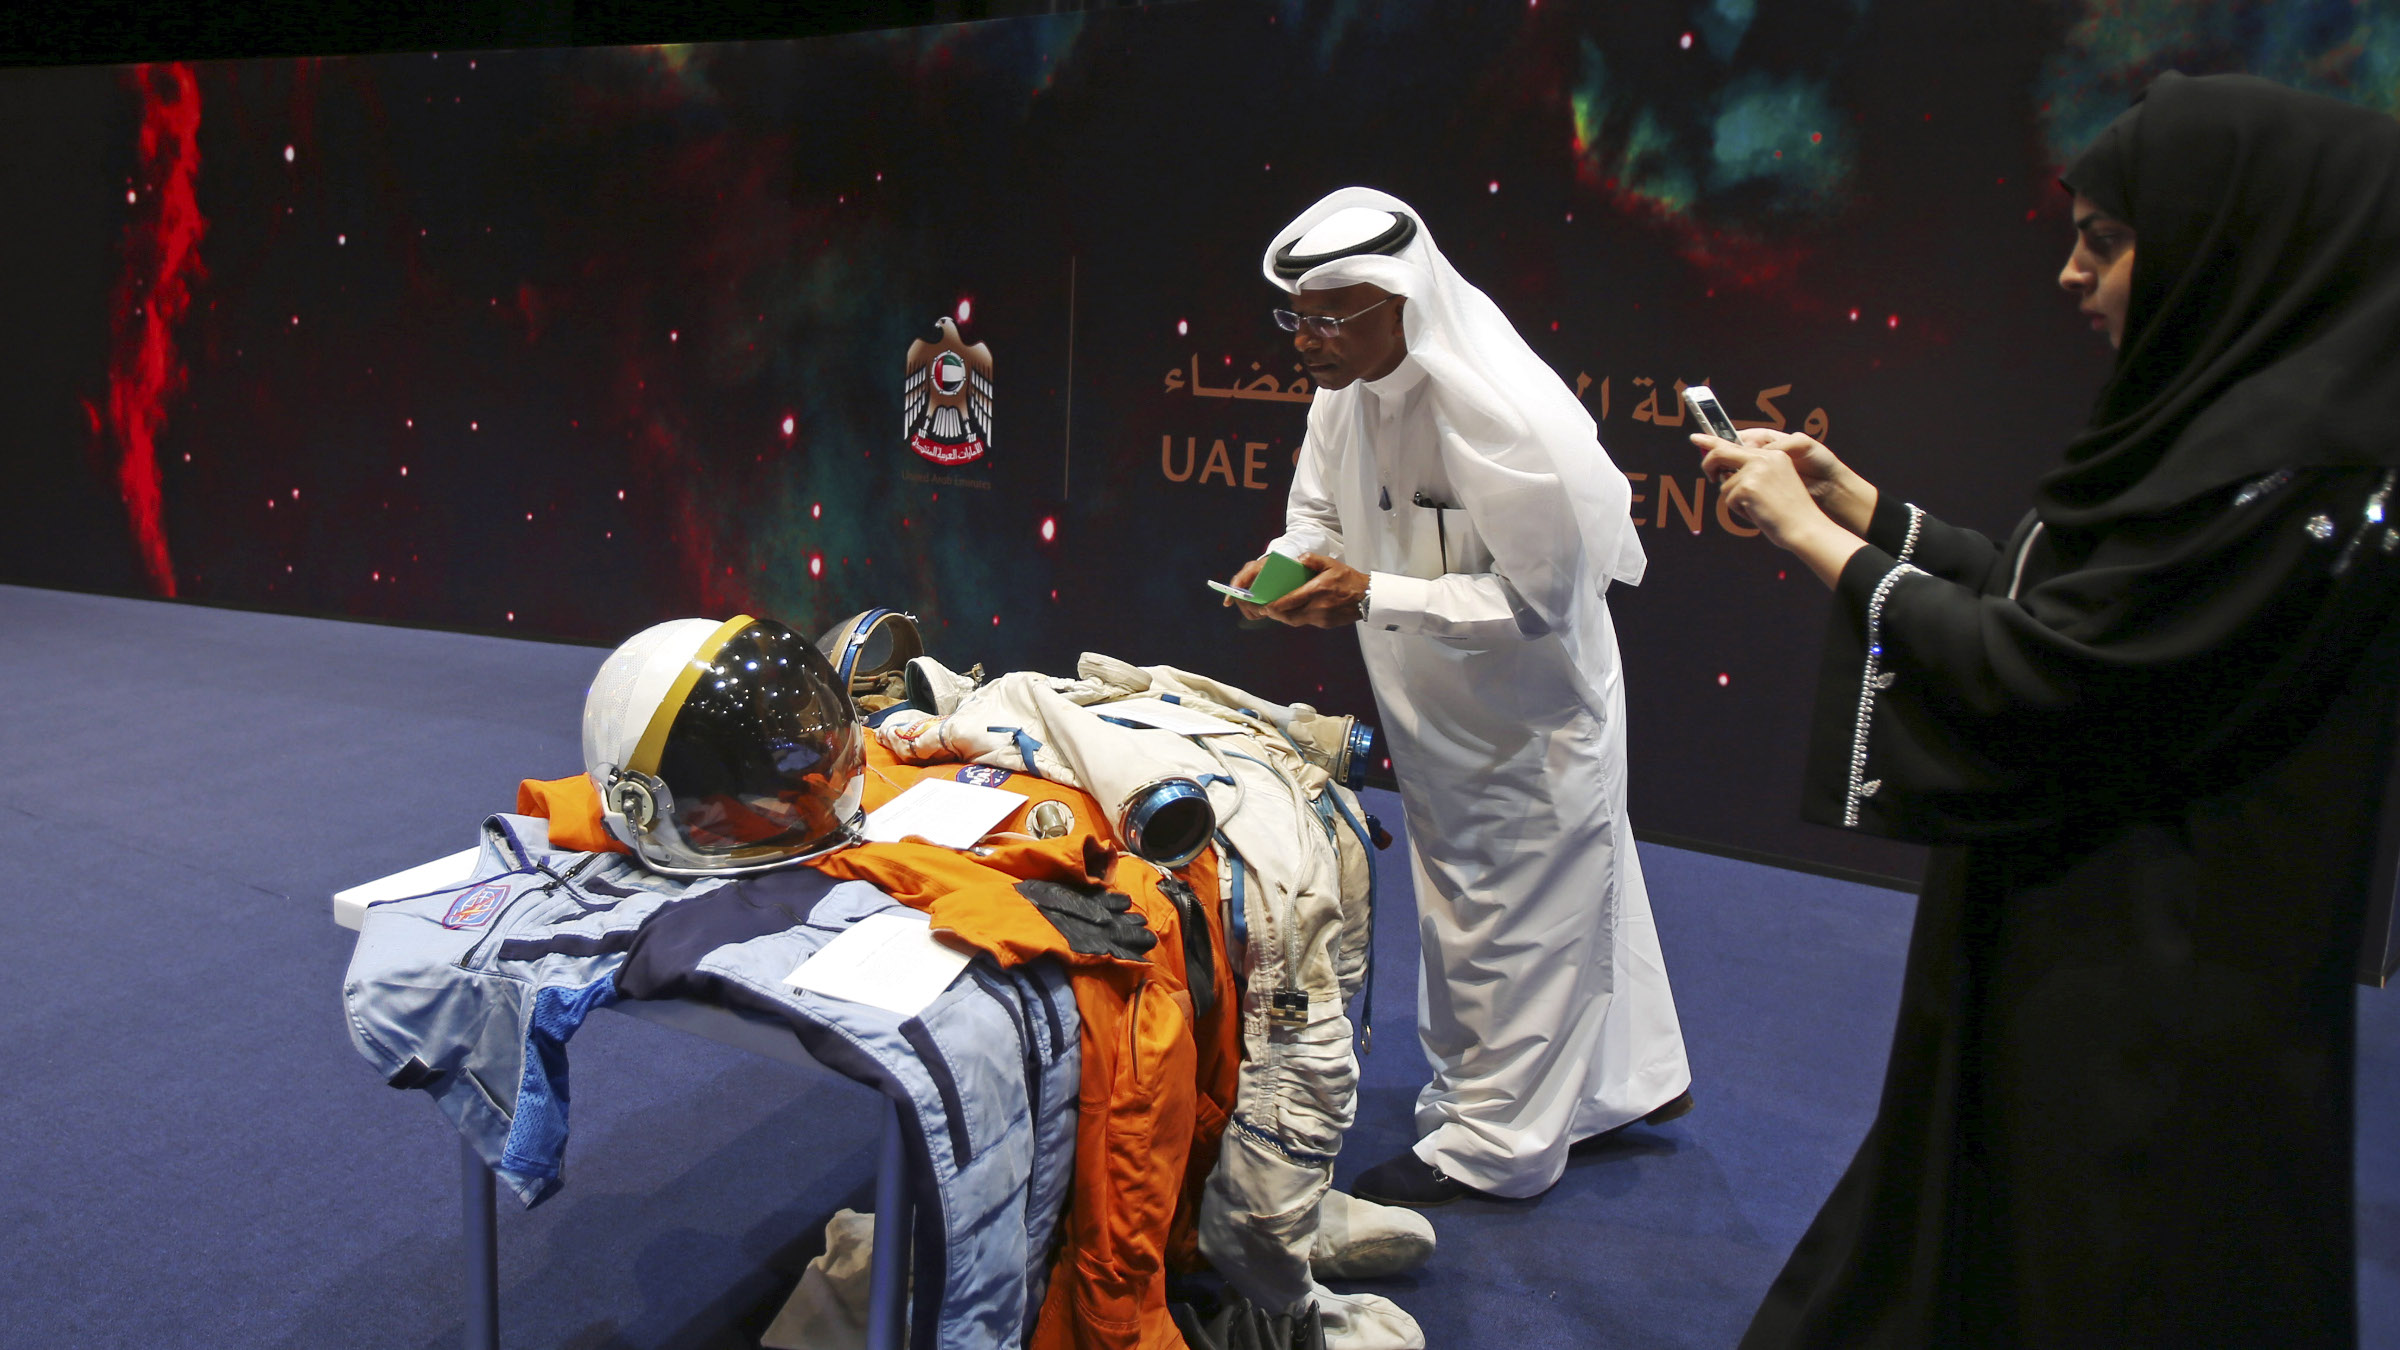 Emirati visitors take photos at the Space Museum during the launch of the UAE Space Agency strategic plan in Abu Dhabi, United Arab Emirates, Monday, May 25, 2015. The agency on Monday laid out a strategic framework for a newly created space agency that aims to integrate various arms of the Gulf federation's burgeoning space industry. The announcement comes less than three weeks after the Dubai-based team behind a 2020 mission to Mars announced that its probe will circle the planet studying its atmosphere, including changes over time and how surface features such as volcanoes, deserts and canyons affect it. (